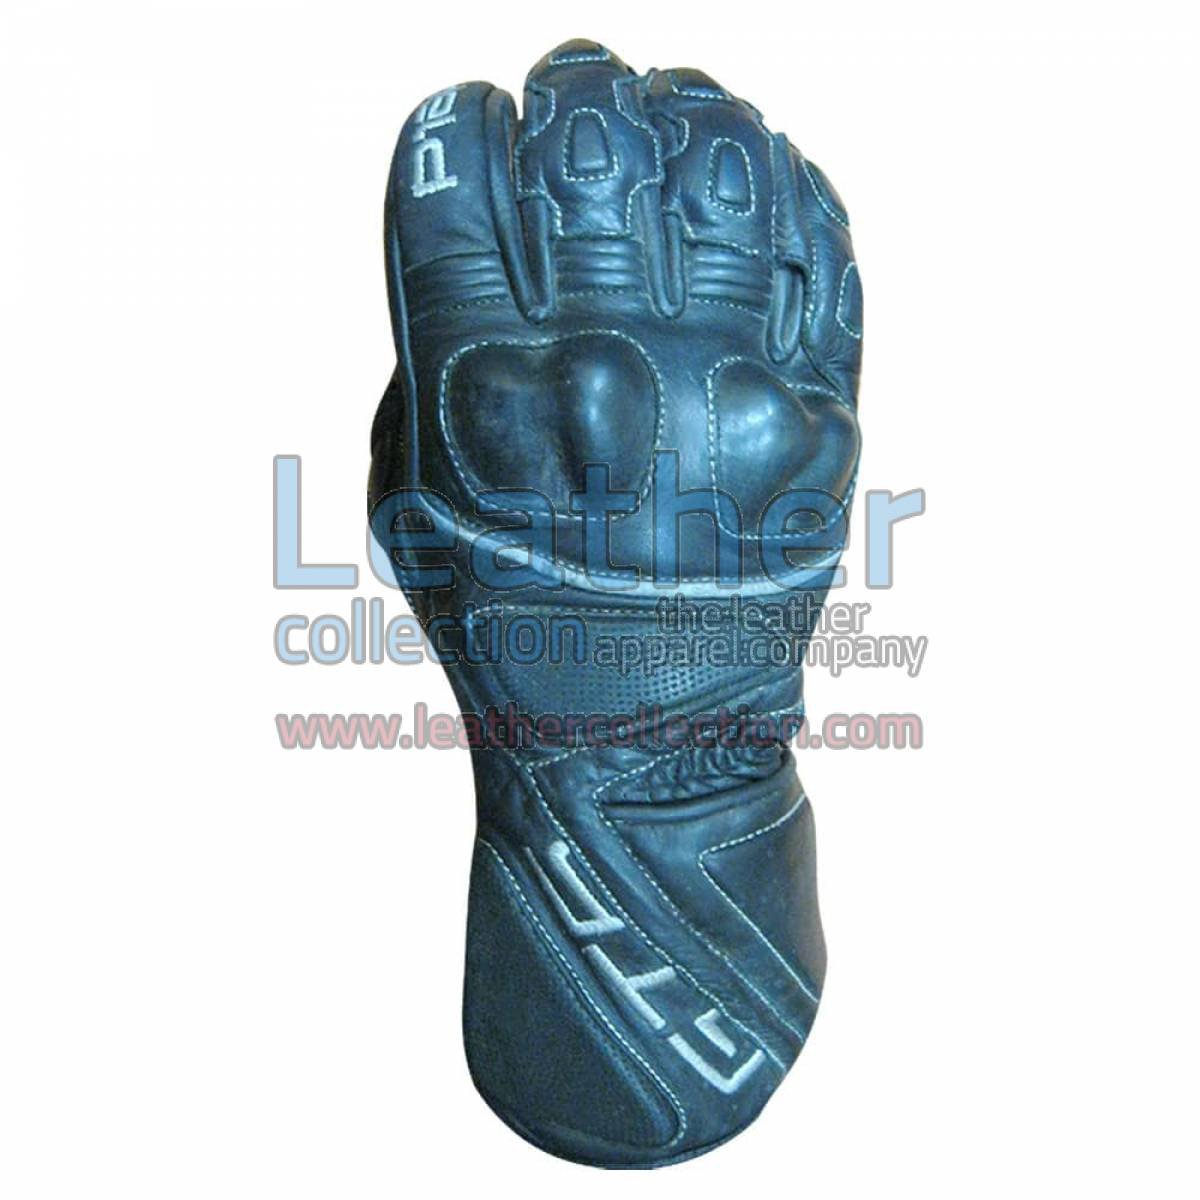 Titan Leather Racing Gloves